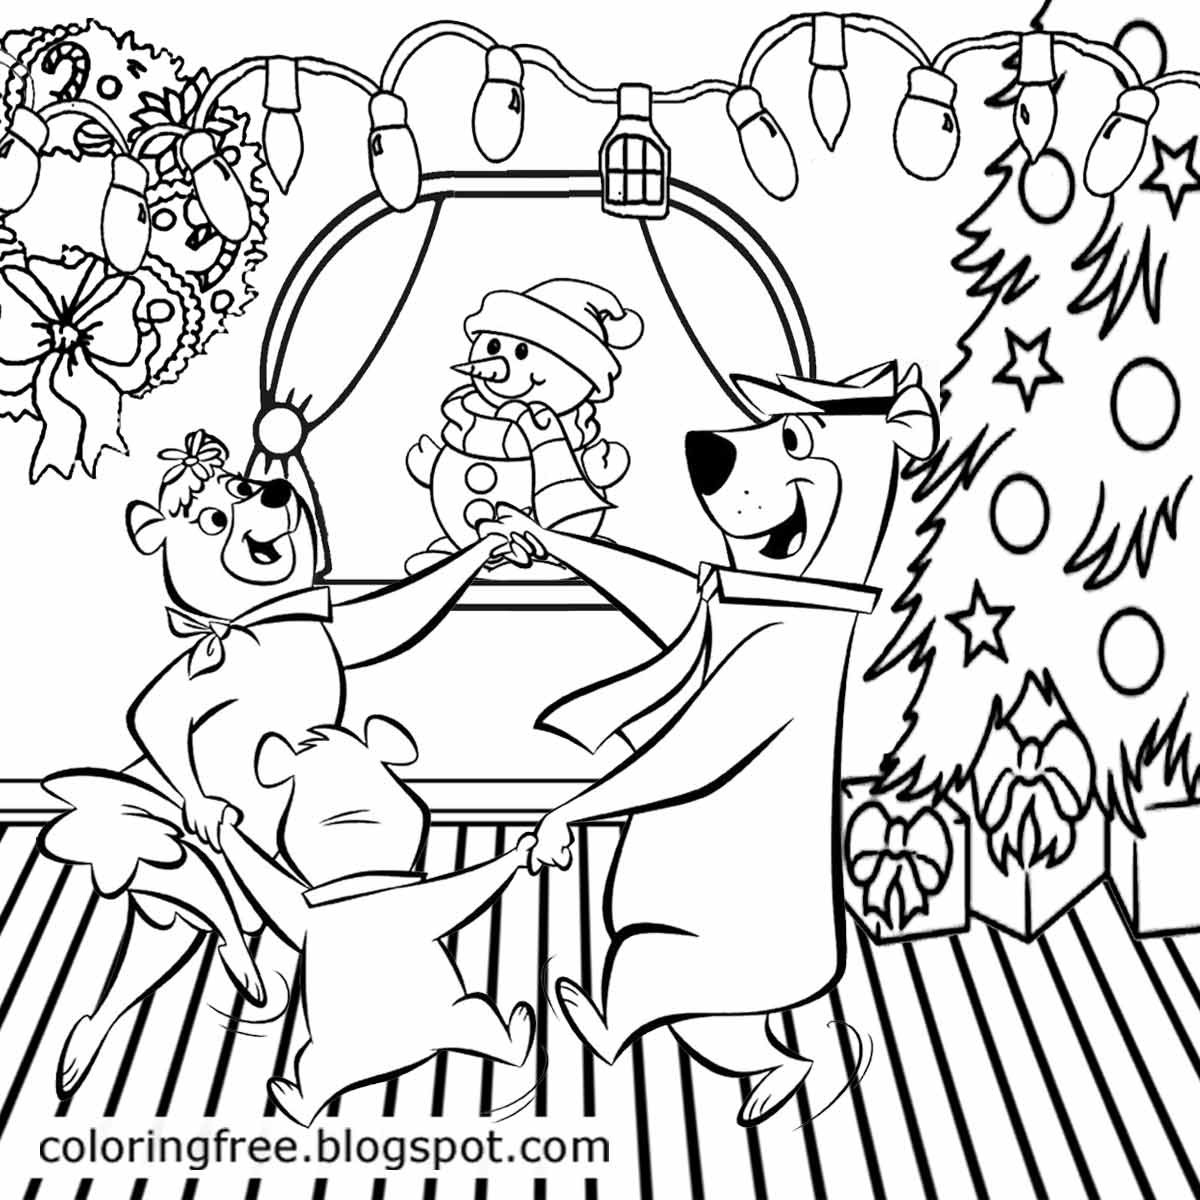 1200x1200 Children's Christmas Party Ideas Luxury Free Coloring Pages